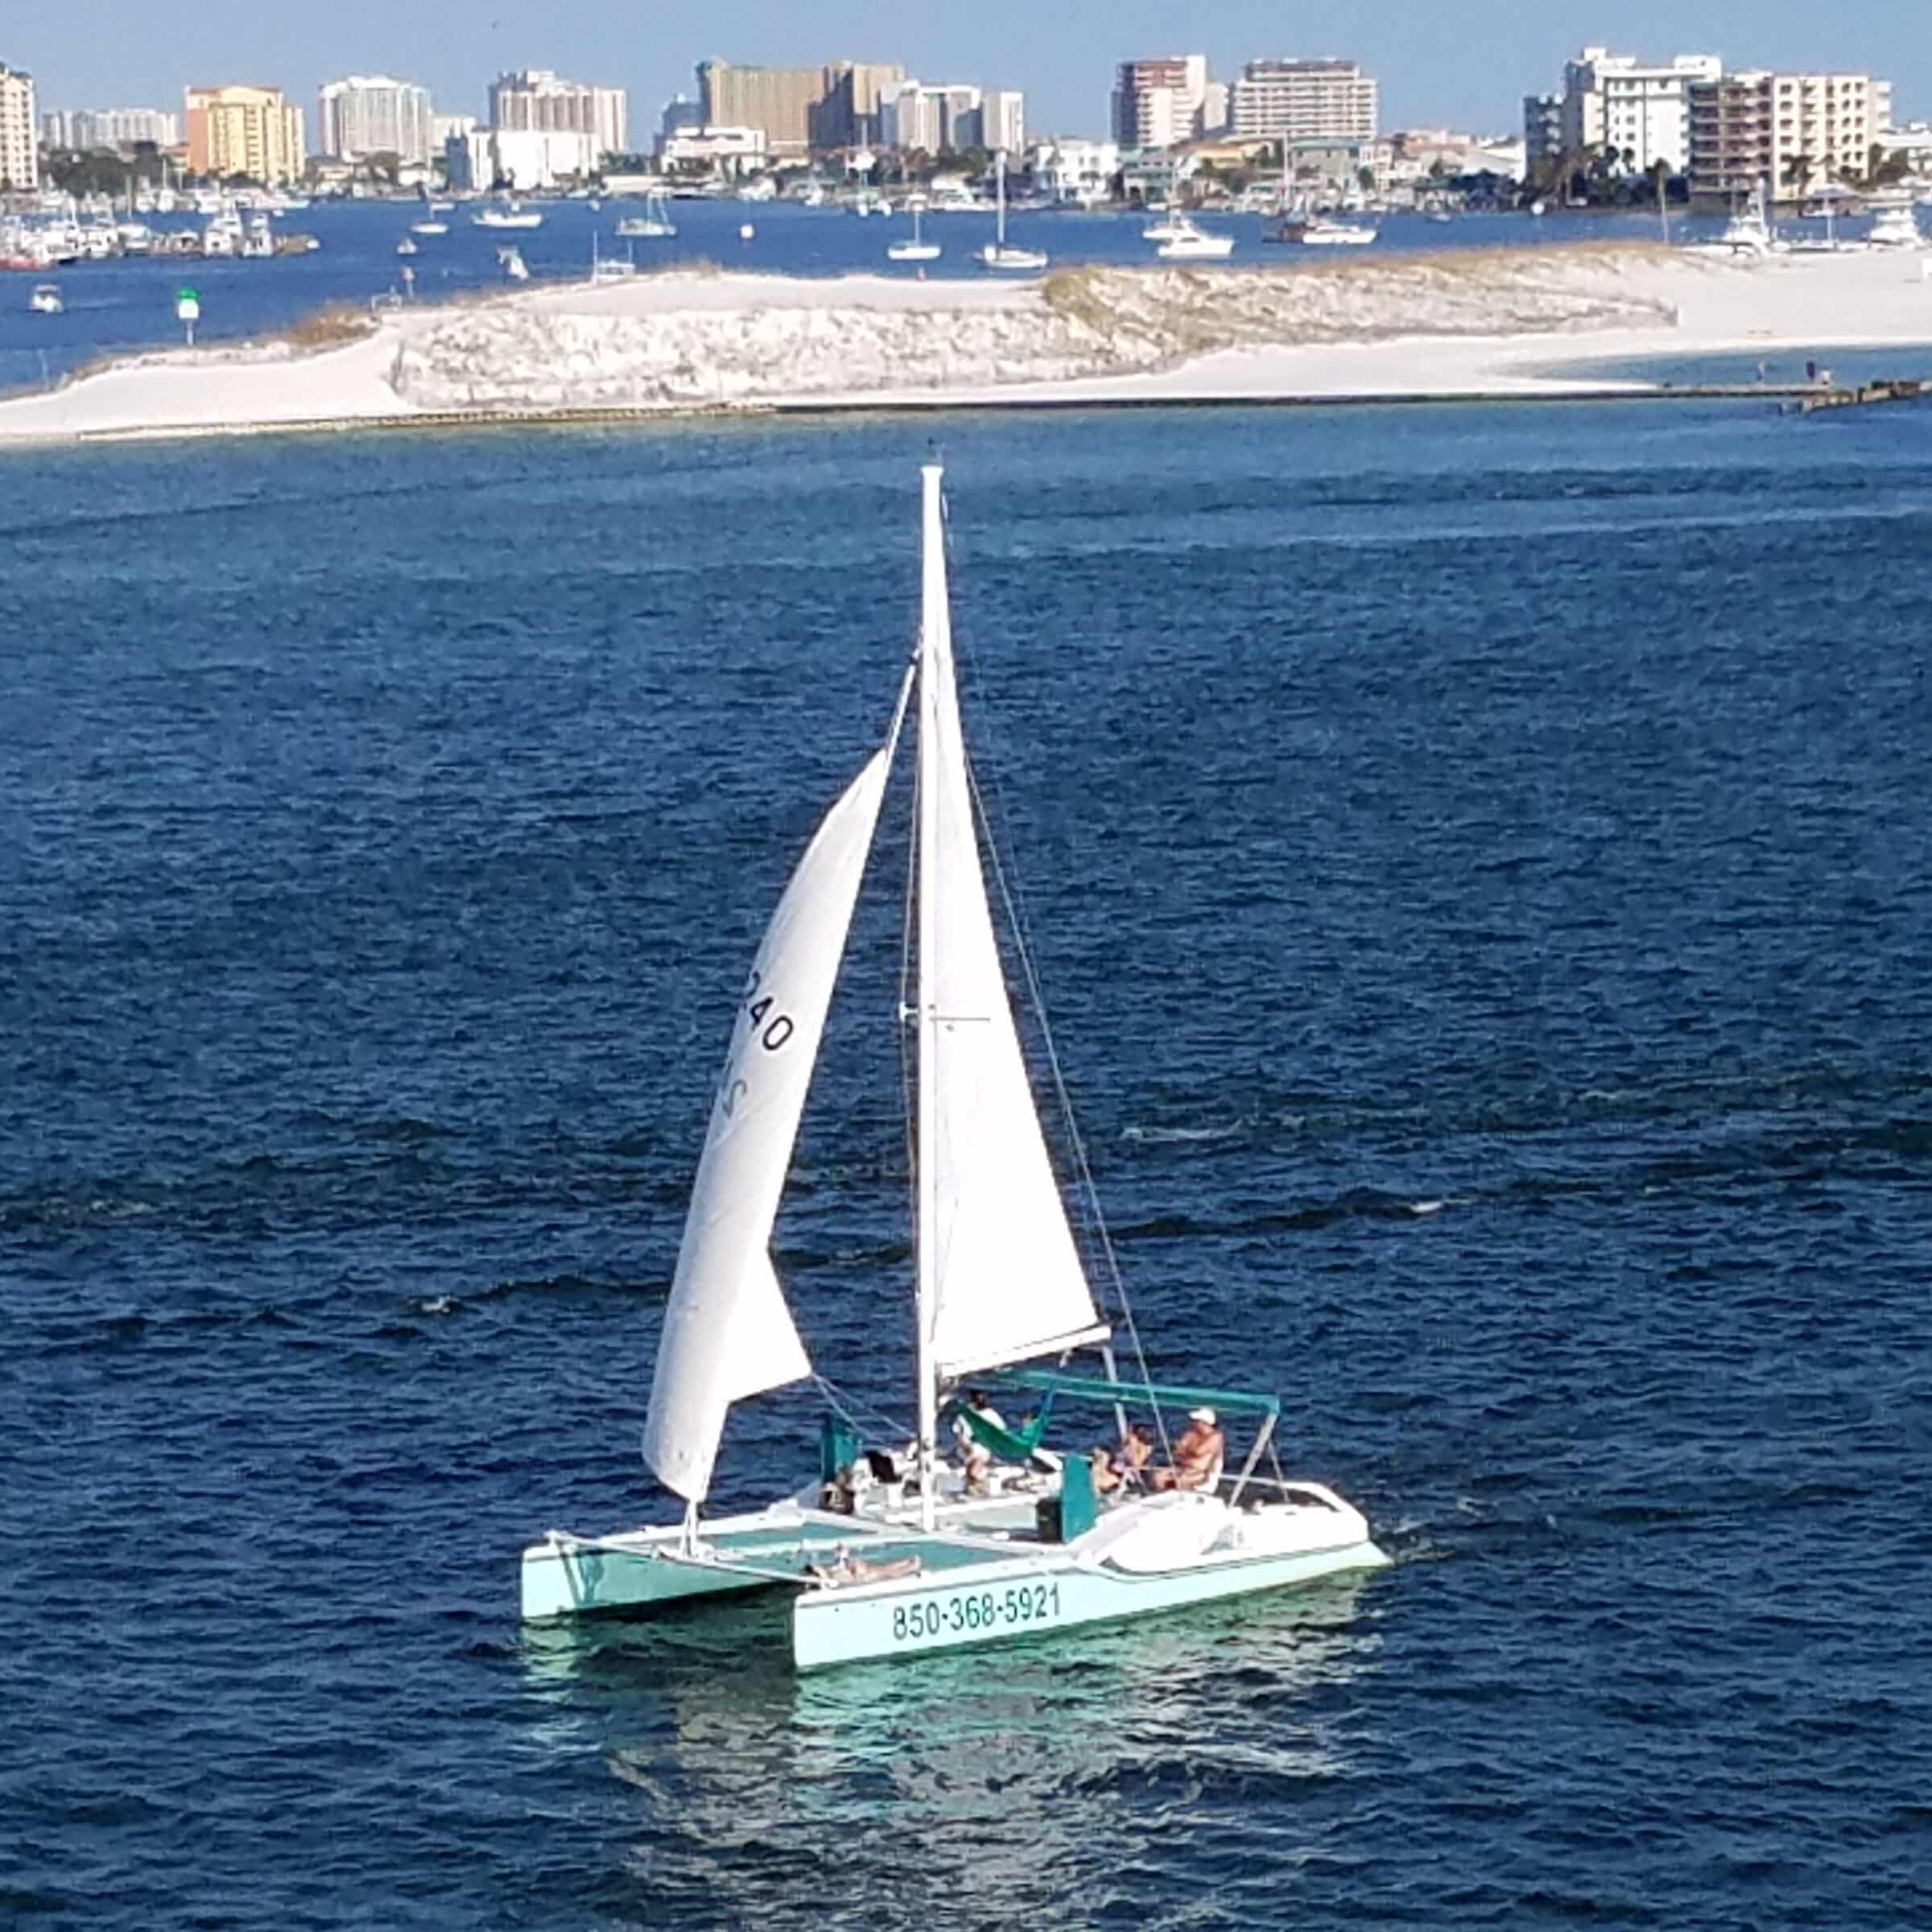 Smile N Wave Sailing Charters, Snorkeling, Dolphin Cruises & Sunset Tours 01